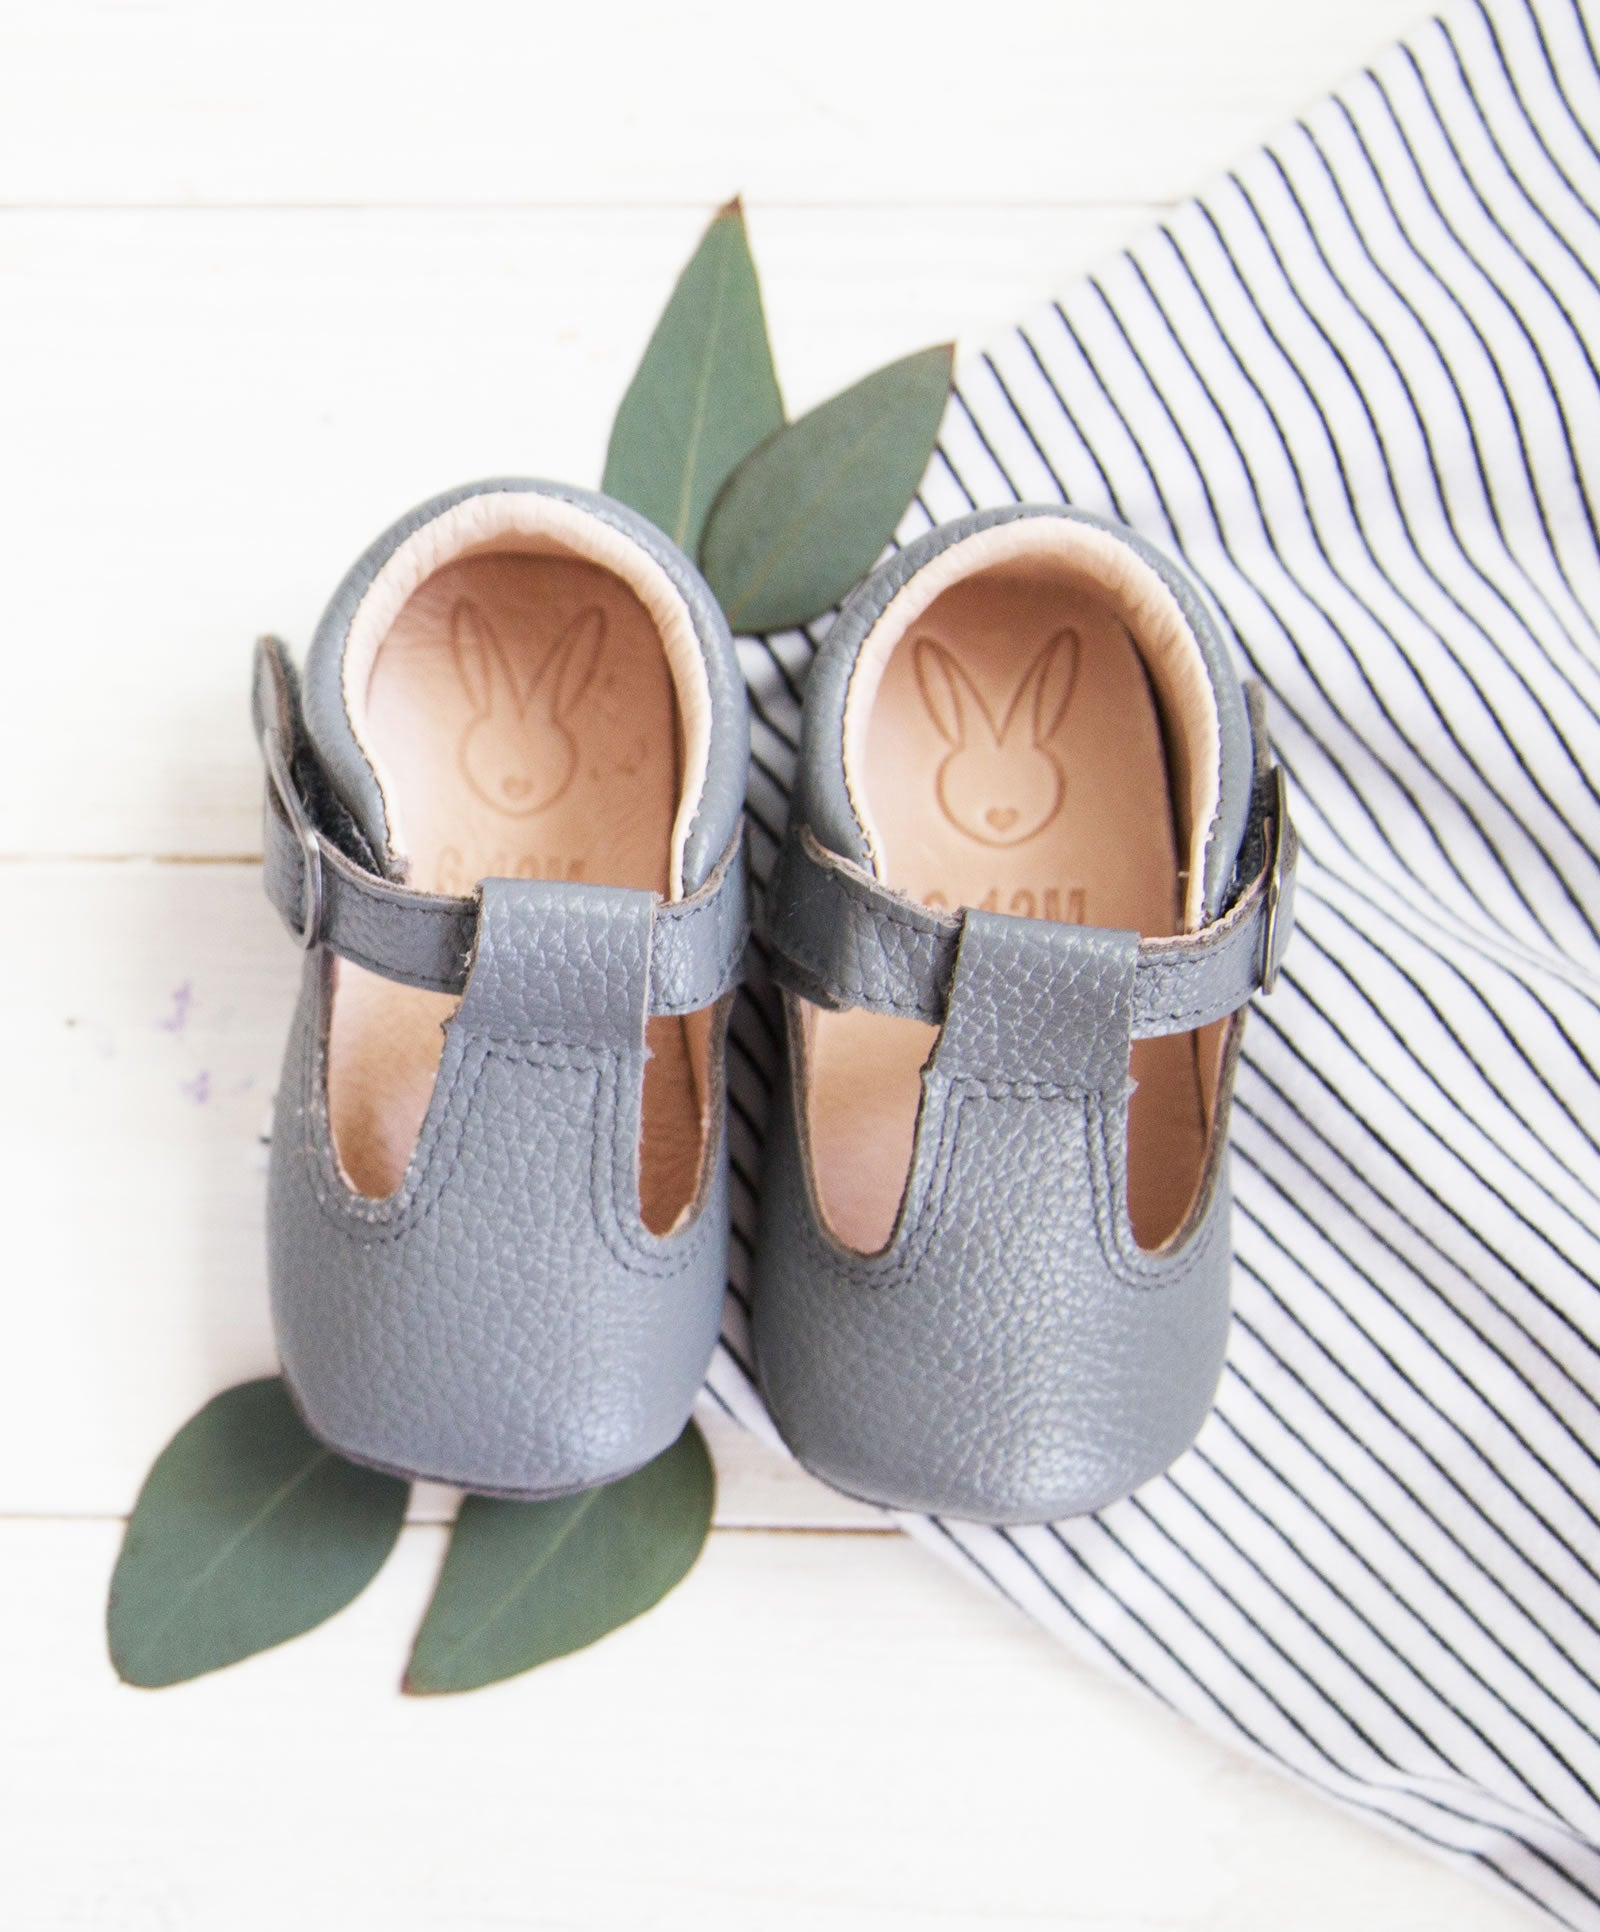 Aston Baby Shaughnessy Shoe in Grey